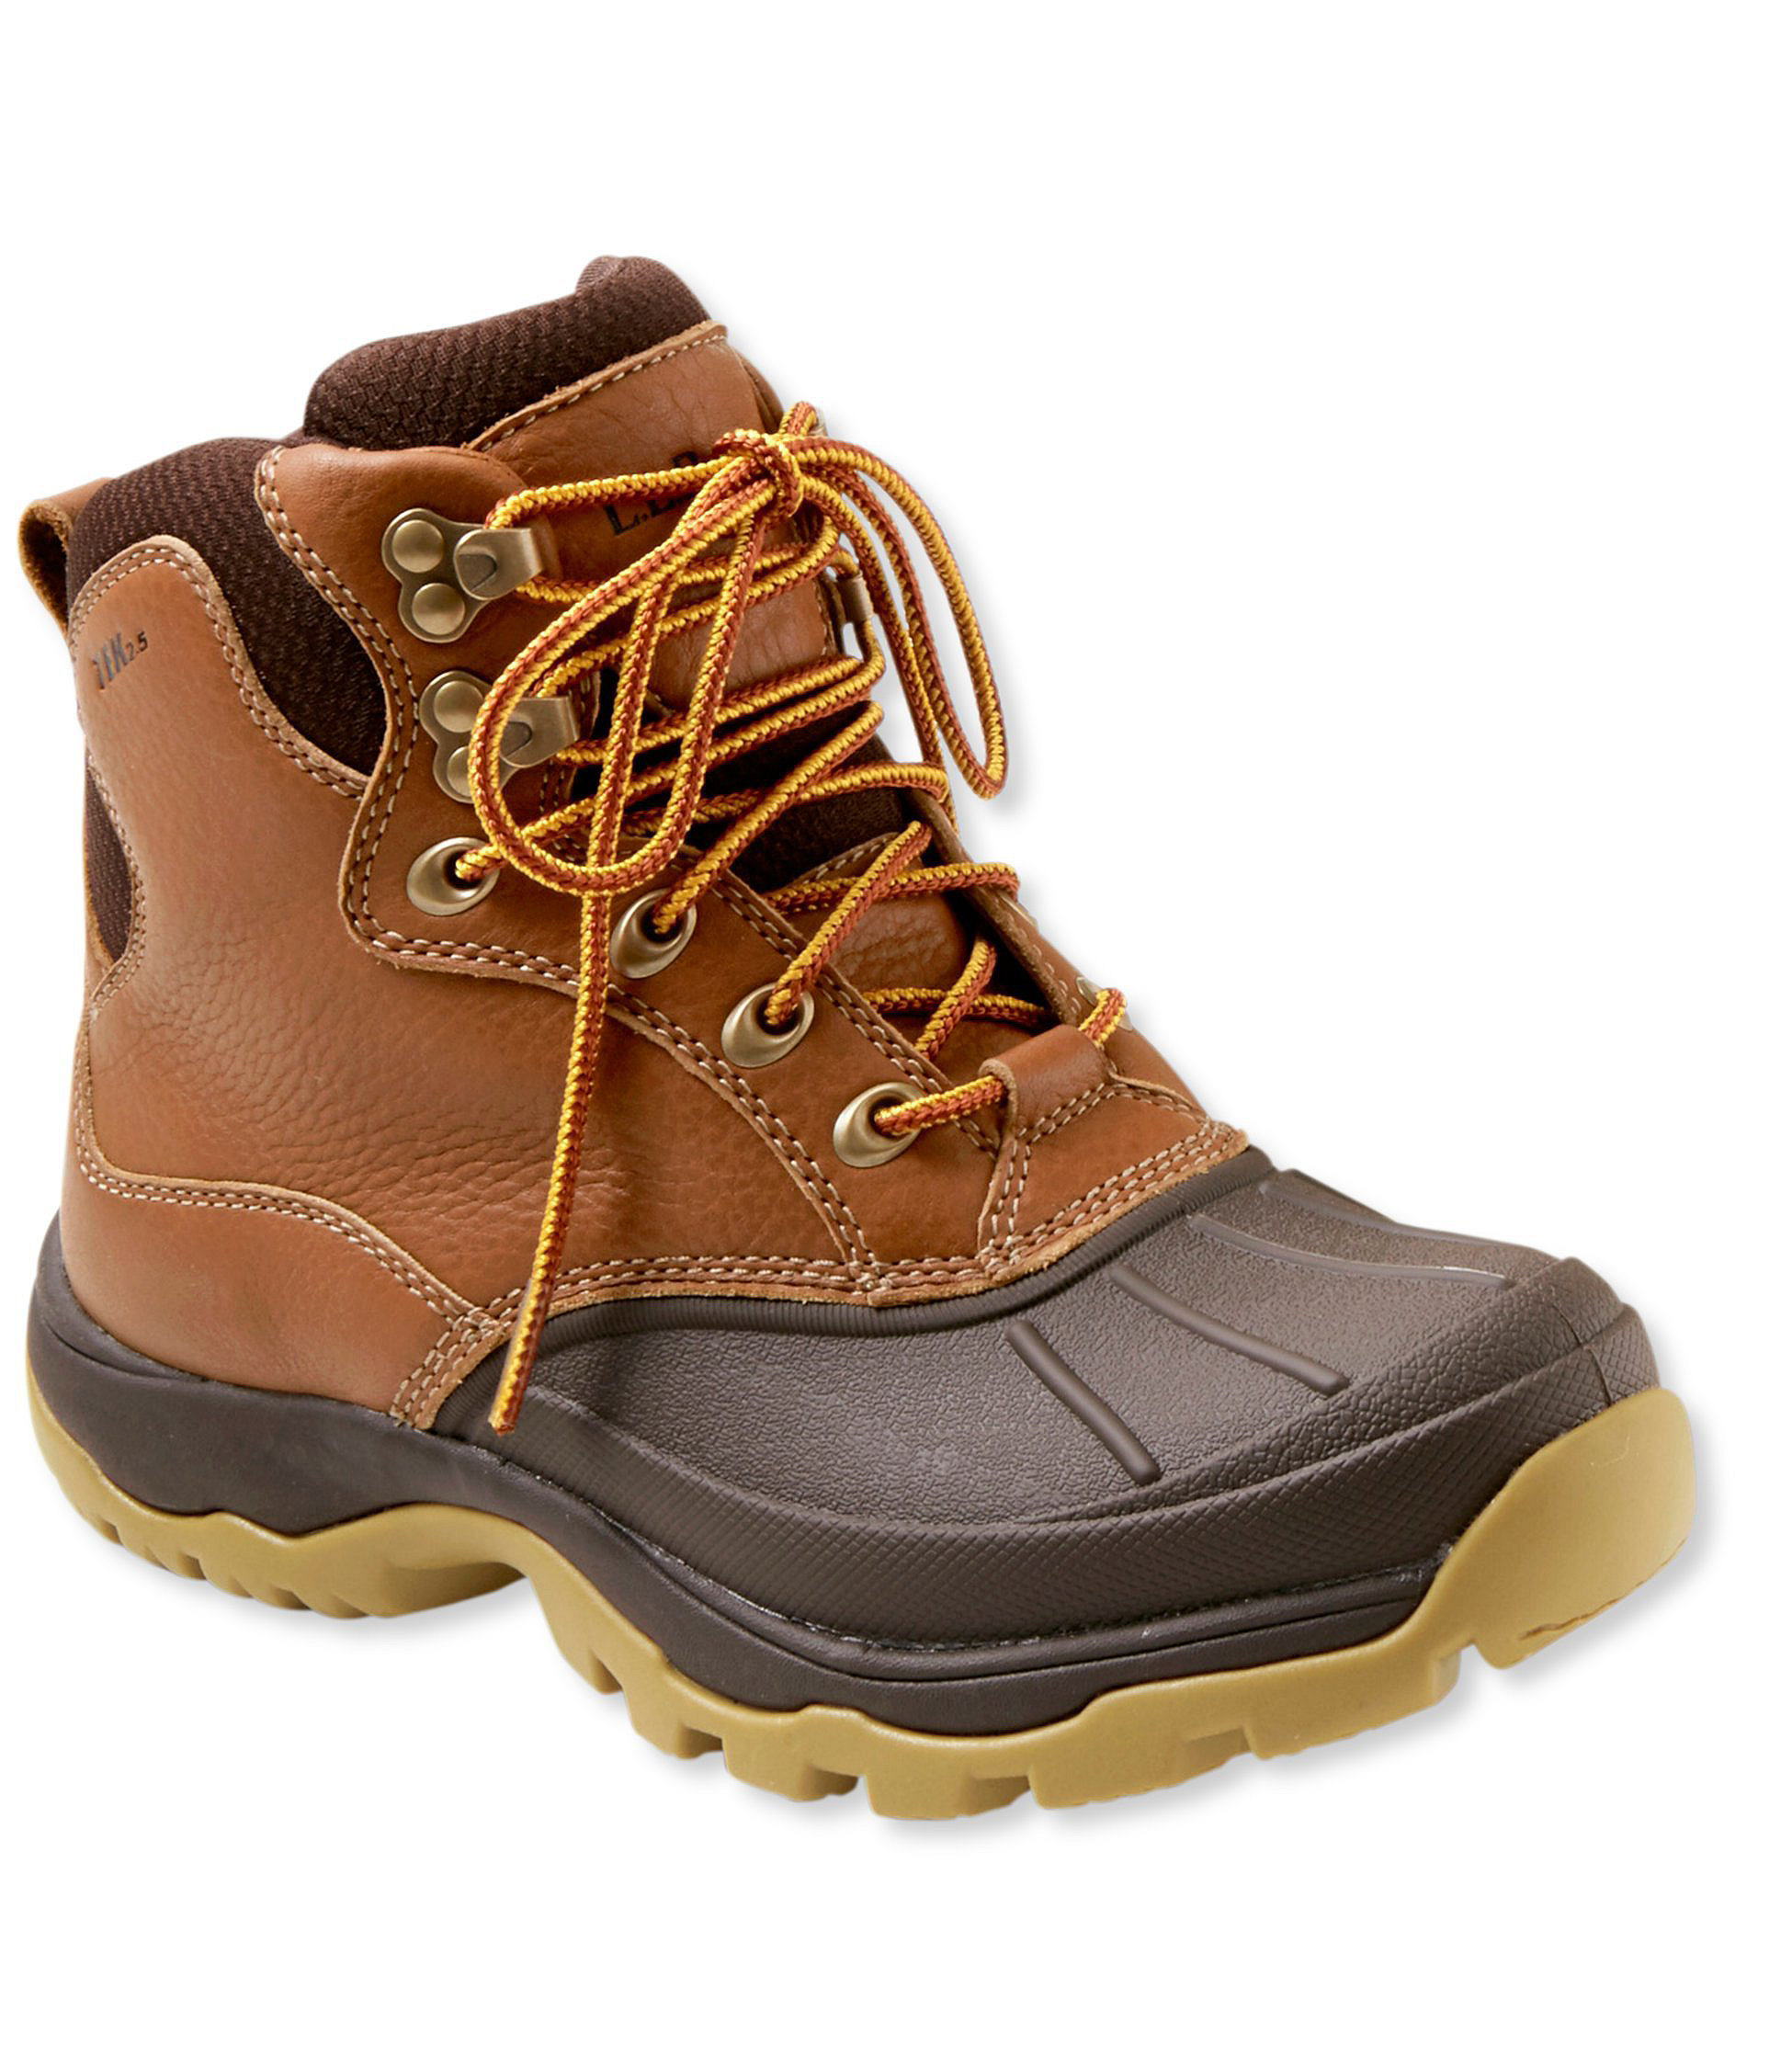 Women's Storm Chasers Classic Waterproof Boots, Lace Up by L.L.Bean